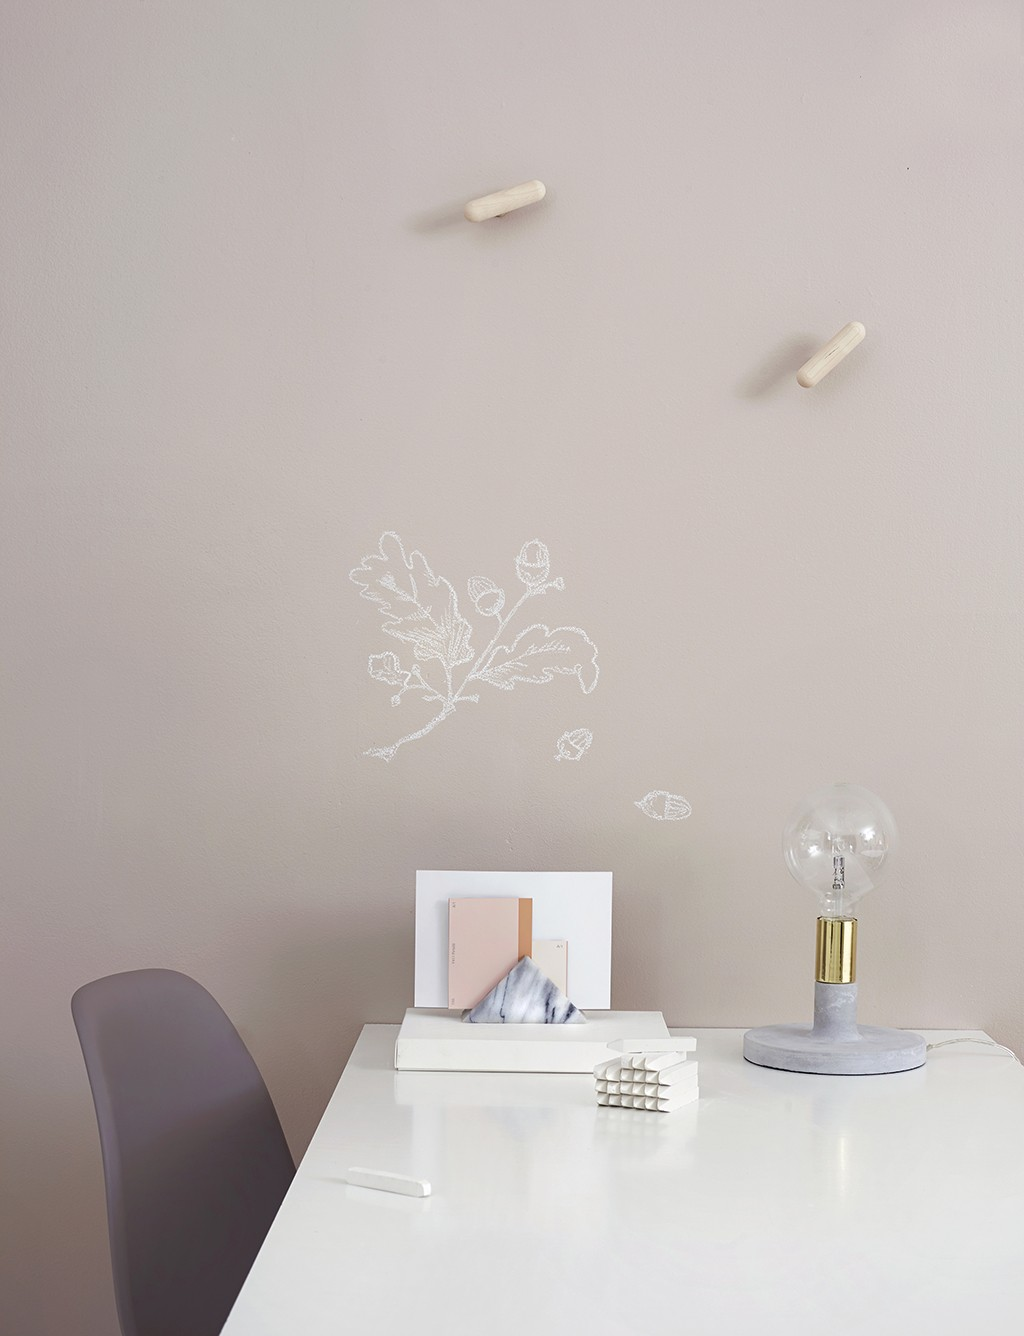 Blog collaboration with Tikkurila I for Tikkurila by Susanna Vento